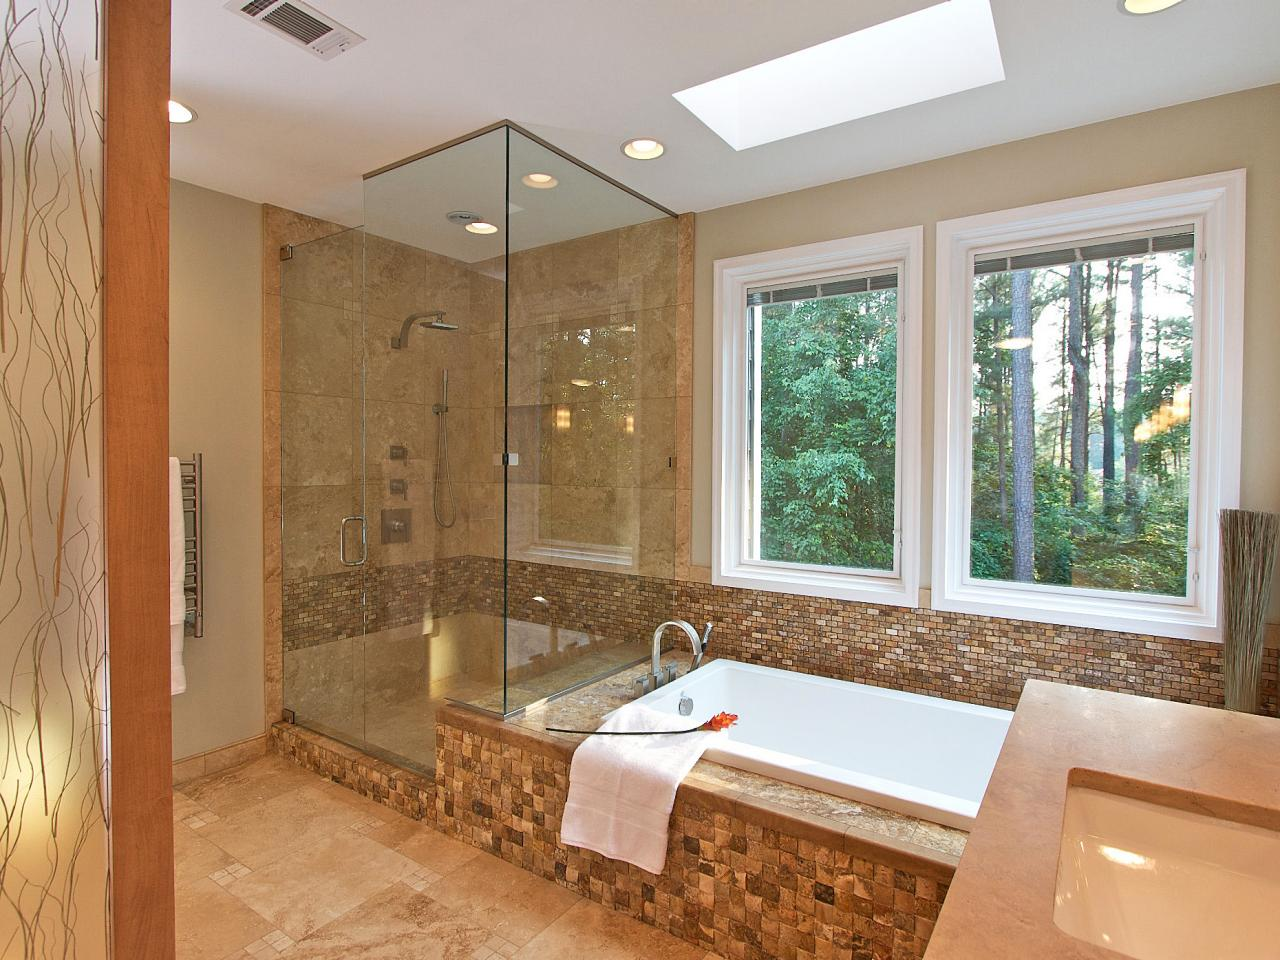 Bathroom Tiles For Every Budget And Design Style Bathroom Ideas Designs Hgtv